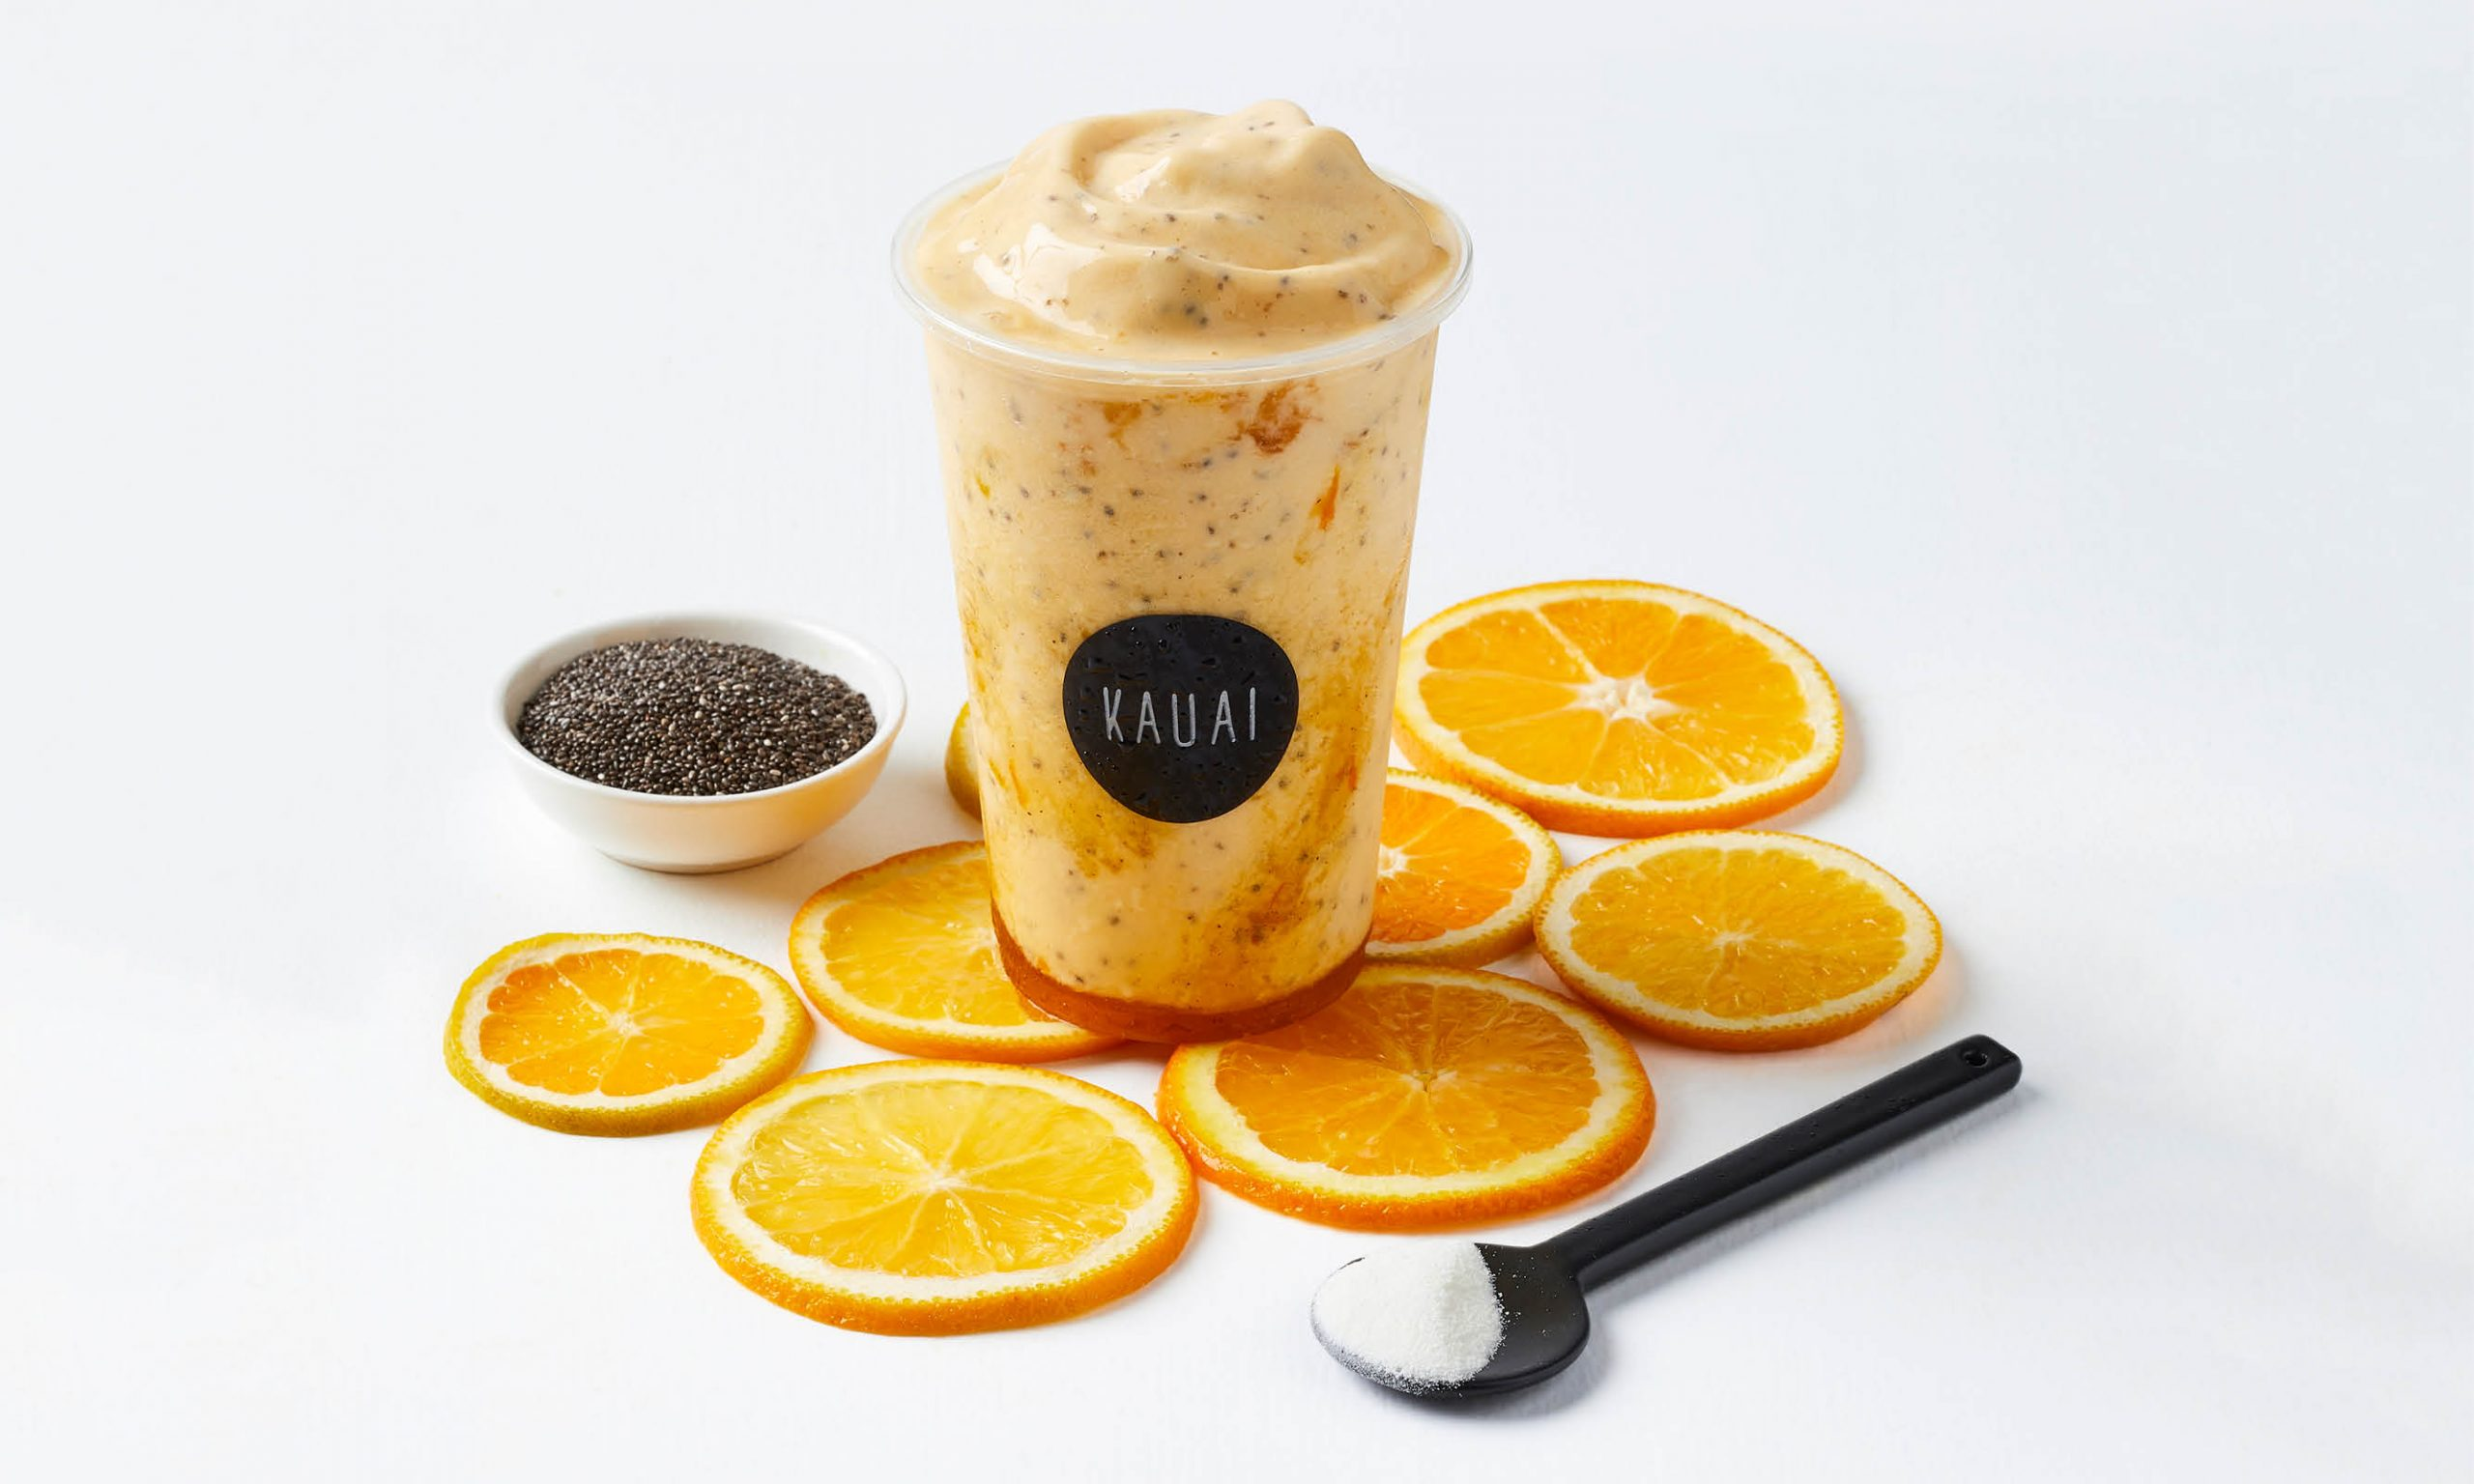 Kauai Citrus Glo Superfood Smoothie